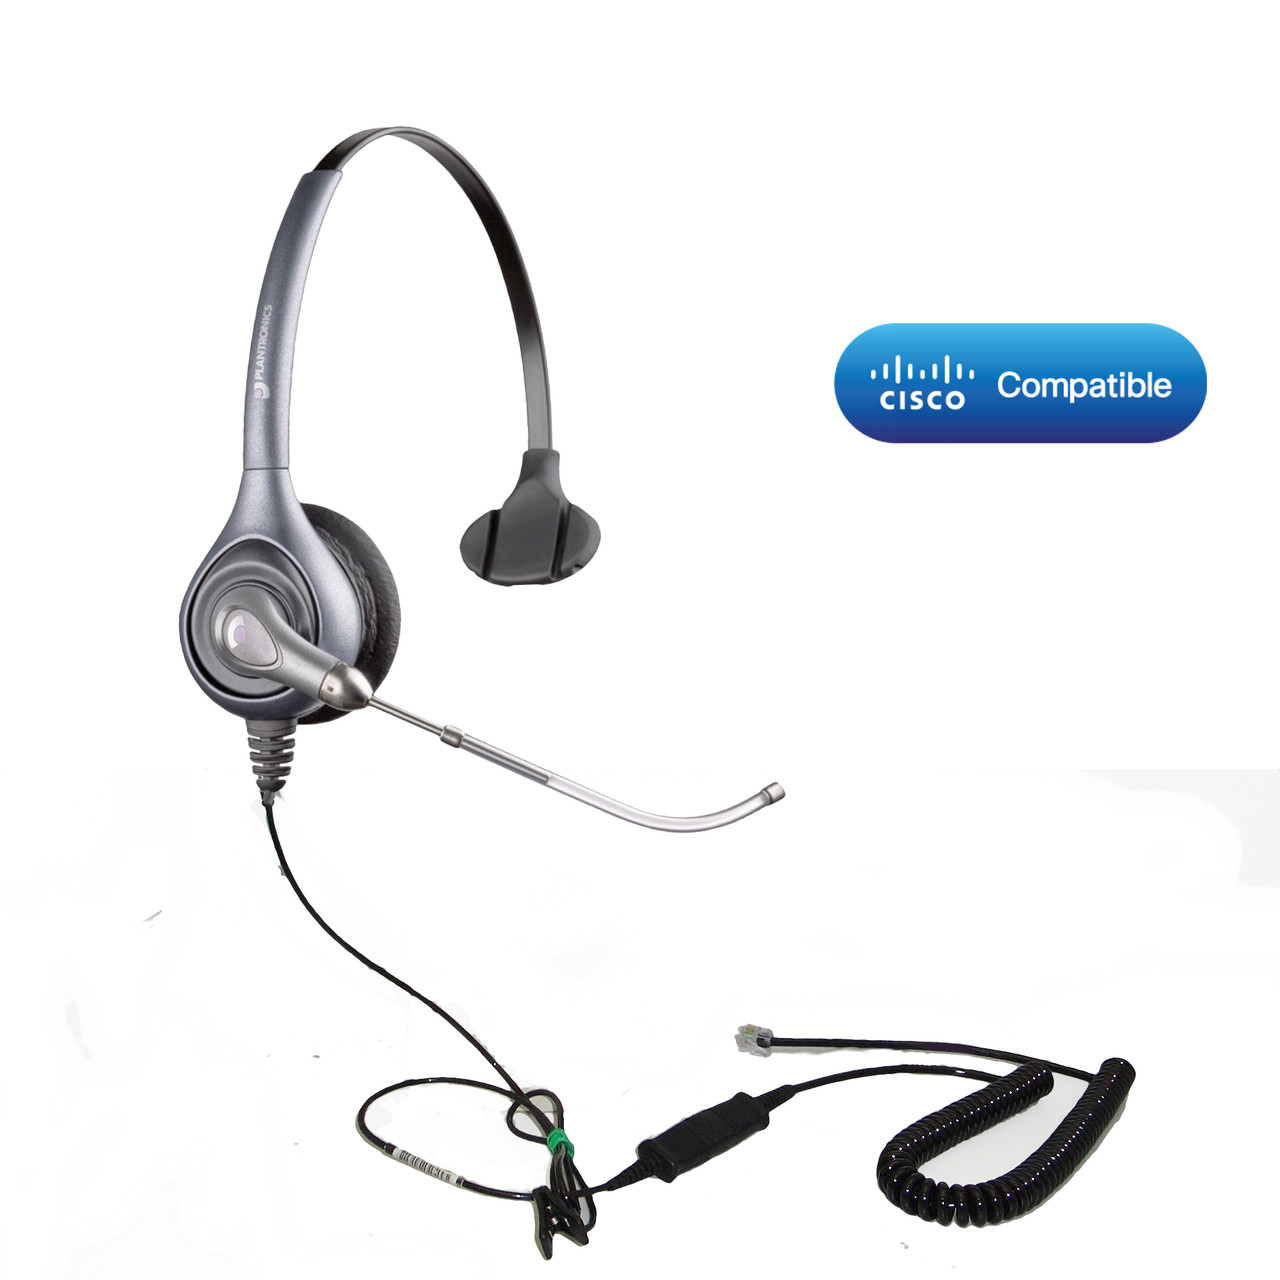 plantronics m22 telephone headset amplifier and audio enhancer with rh headsetstore global teck com plantronics vista m22 headset troubleshooting M12 Plantronics Headsets